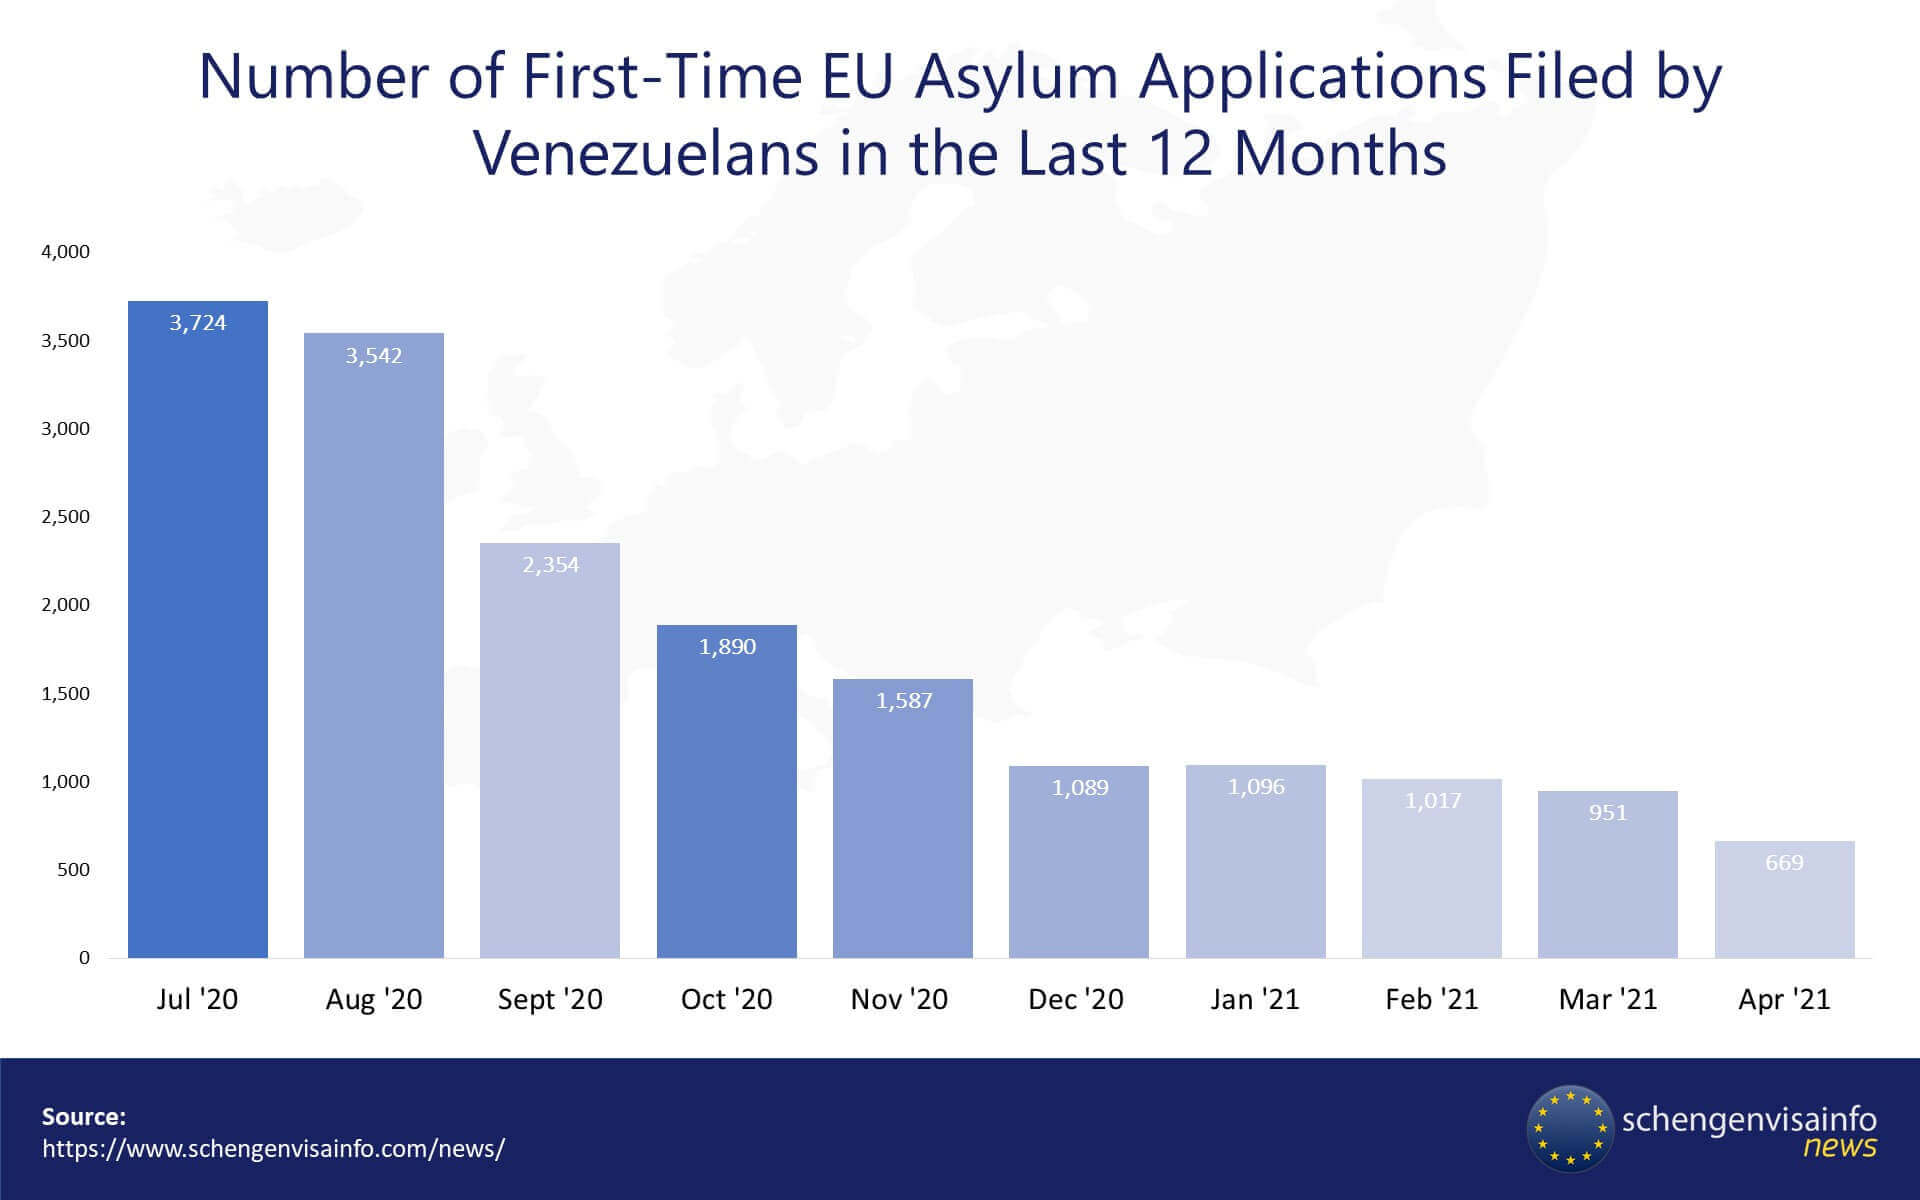 Latin Americans Applying Way Less for EU Asylum Compared to Last Year, EASO Report Shows